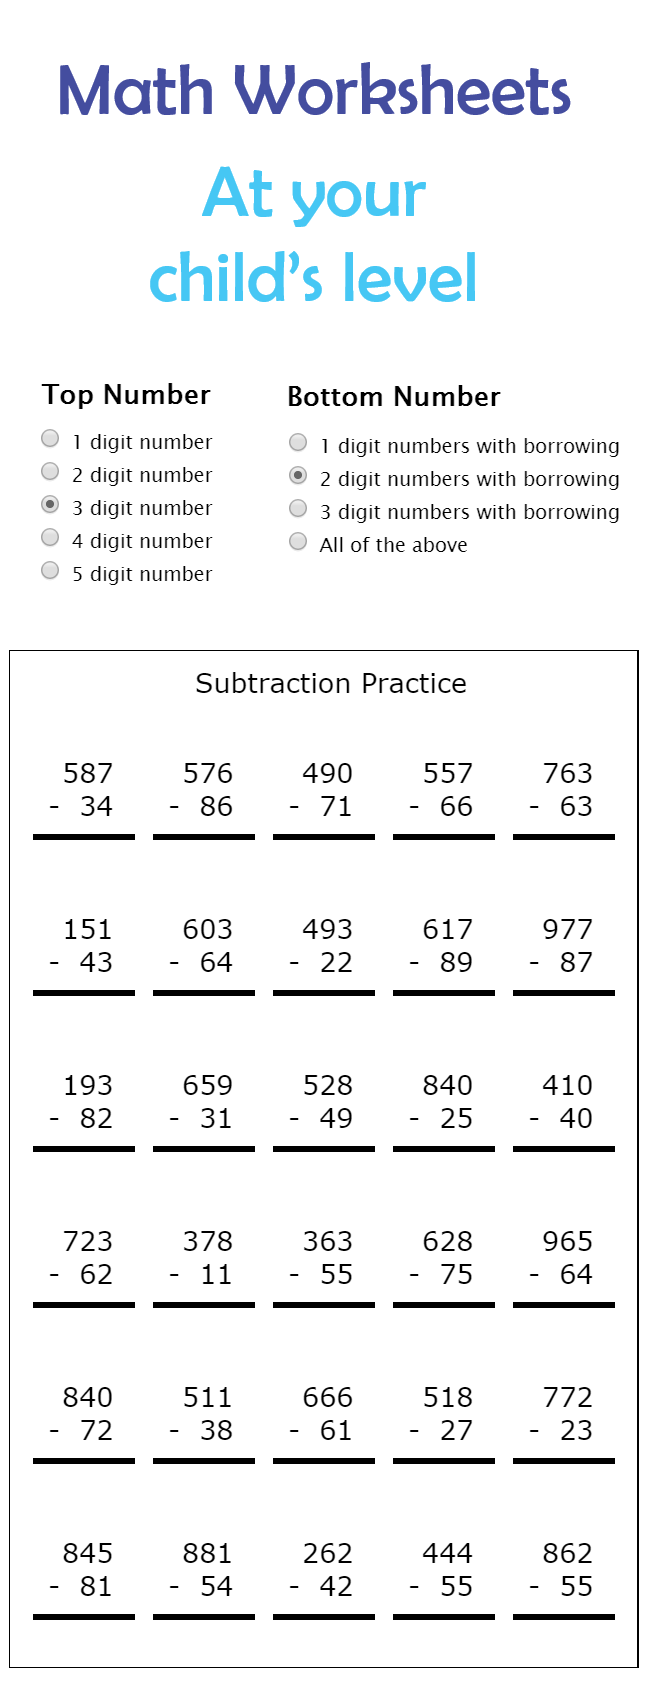 Unlimited Math Worksheets At Every Level Math Worksheets Subtraction Practice Printable Math Worksheets [ 1689 x 647 Pixel ]